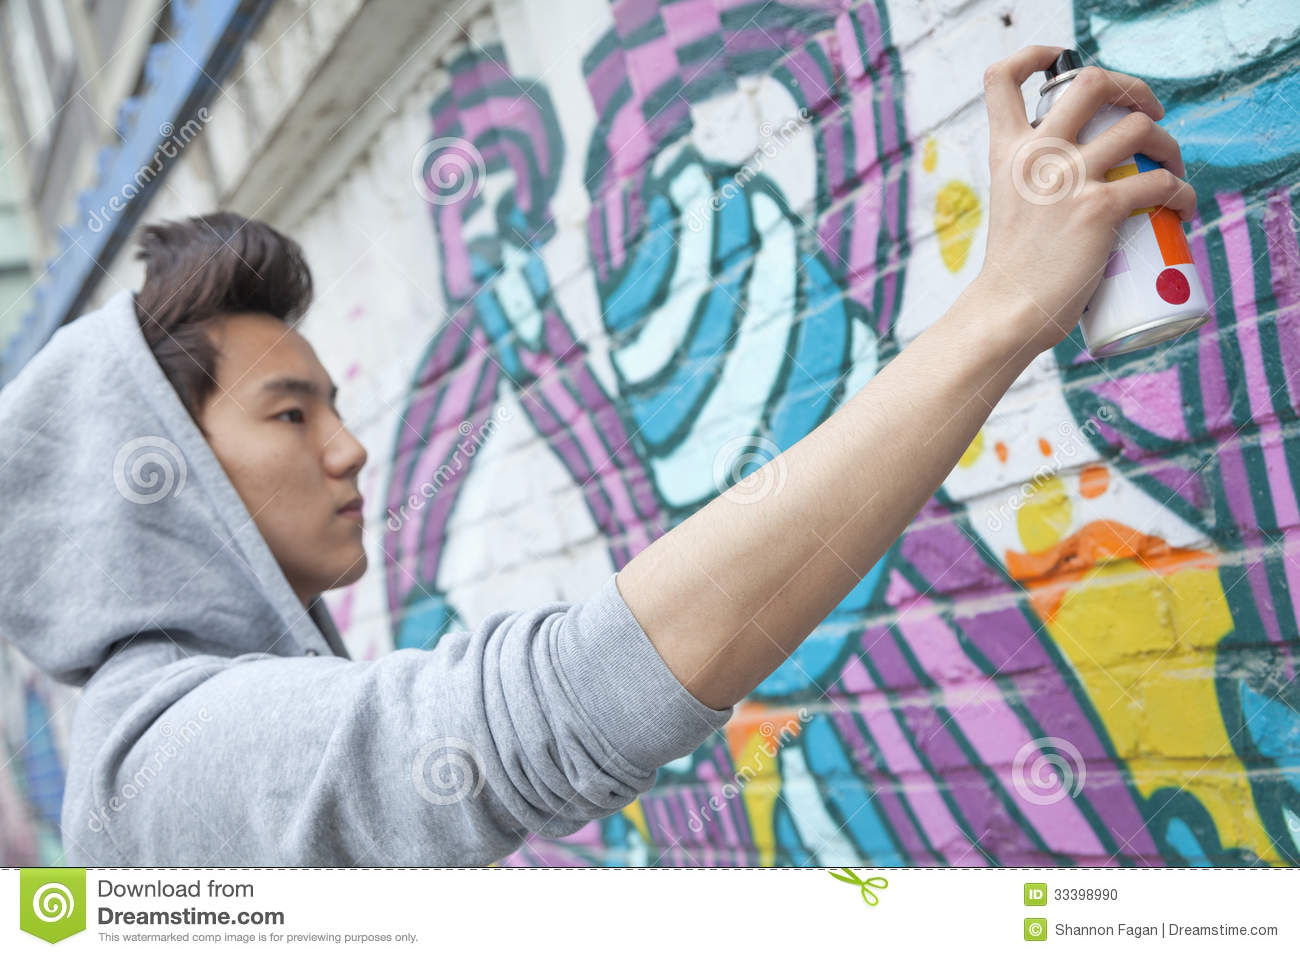 Serious young man concentrating while holding a spray can for Wall spray painting designs